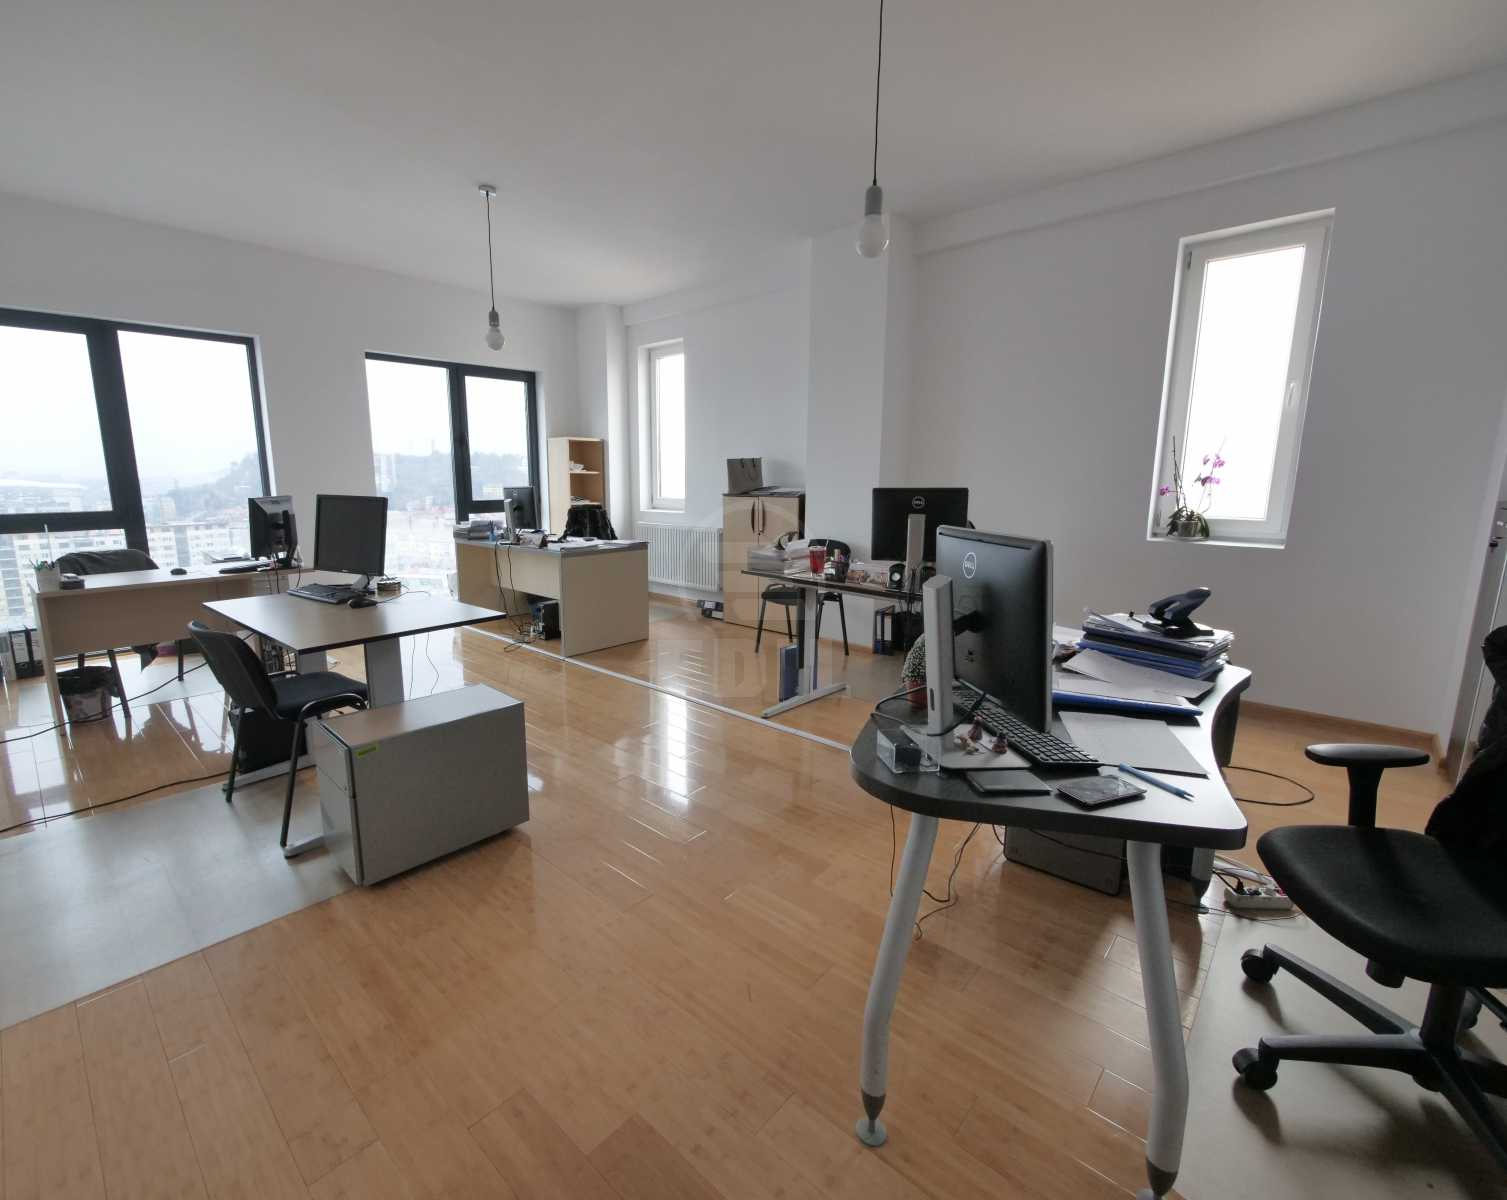 Office for sale 4 rooms, BICJ297752-1